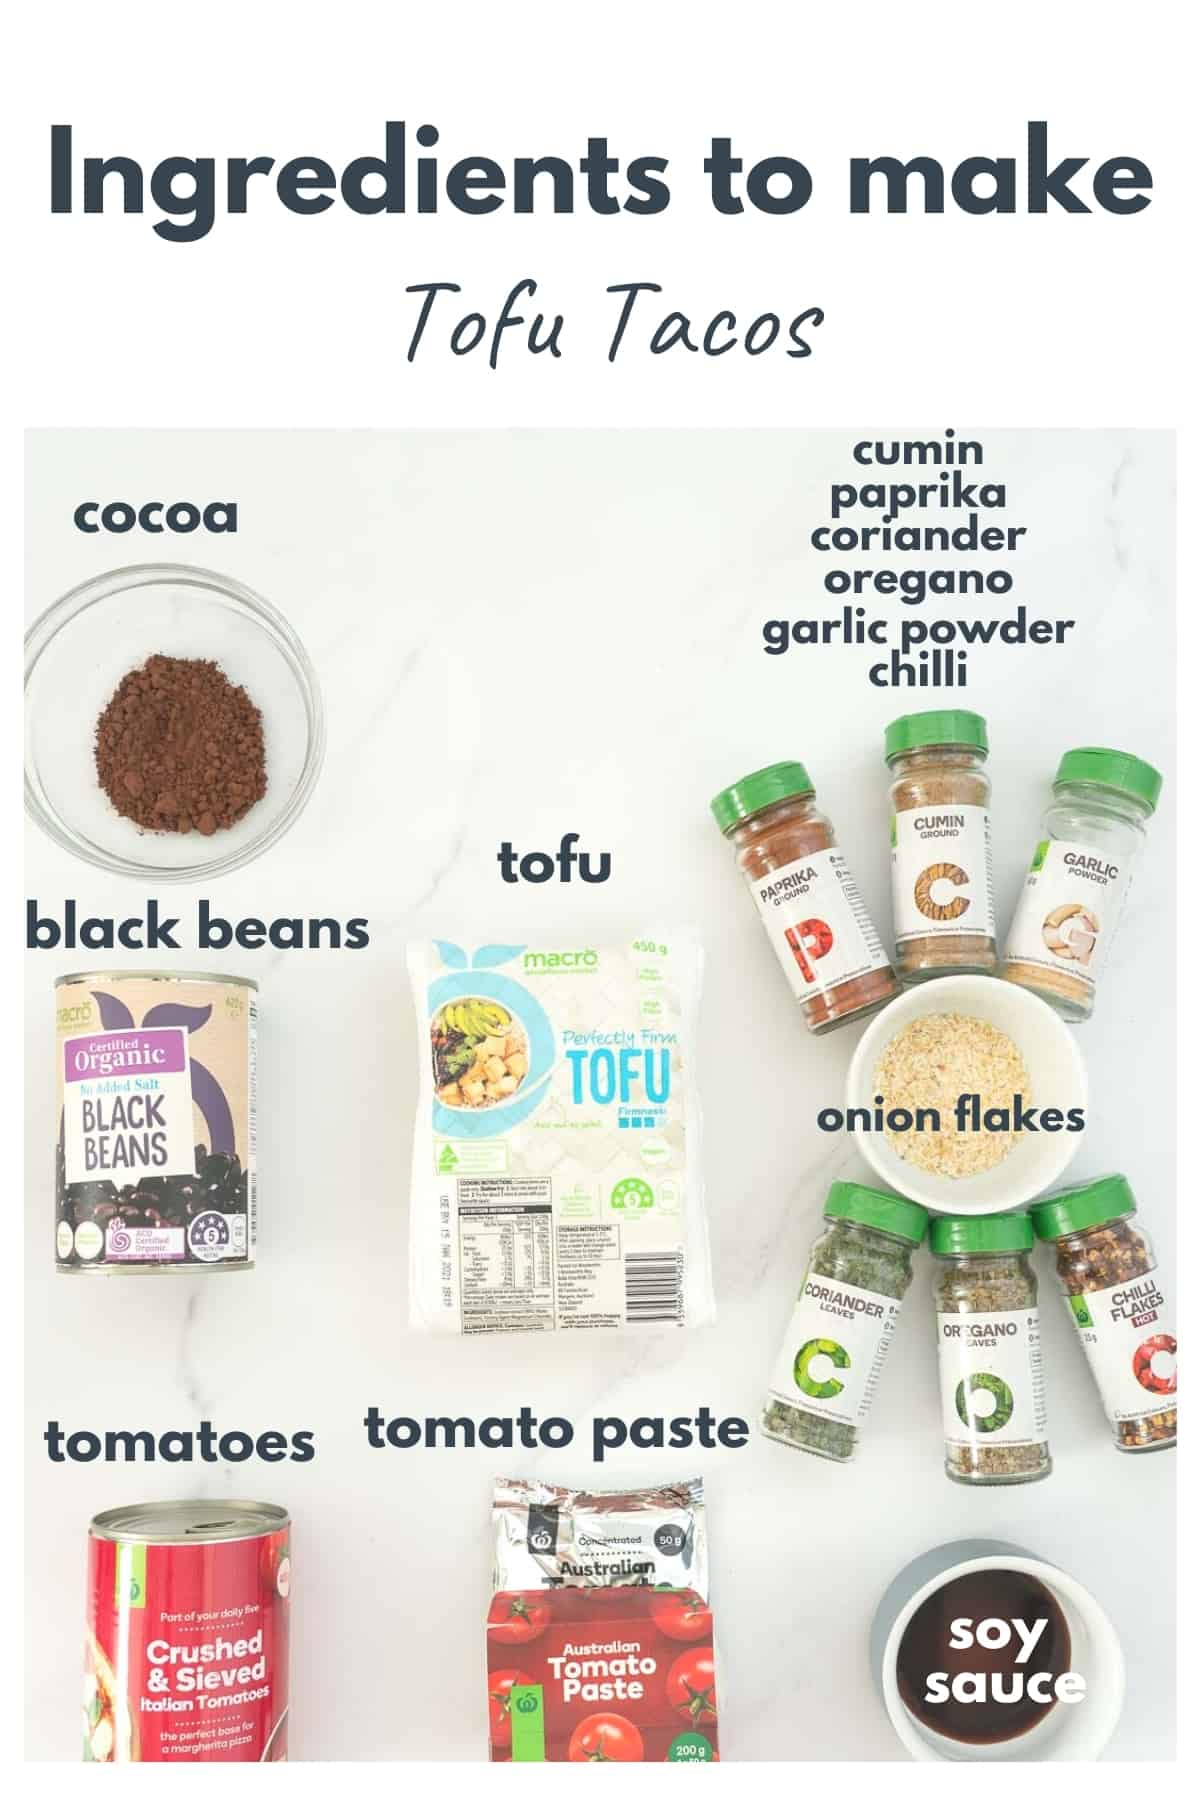 The ingredients to make tofo tacos laid out on a bench top with text overlay.